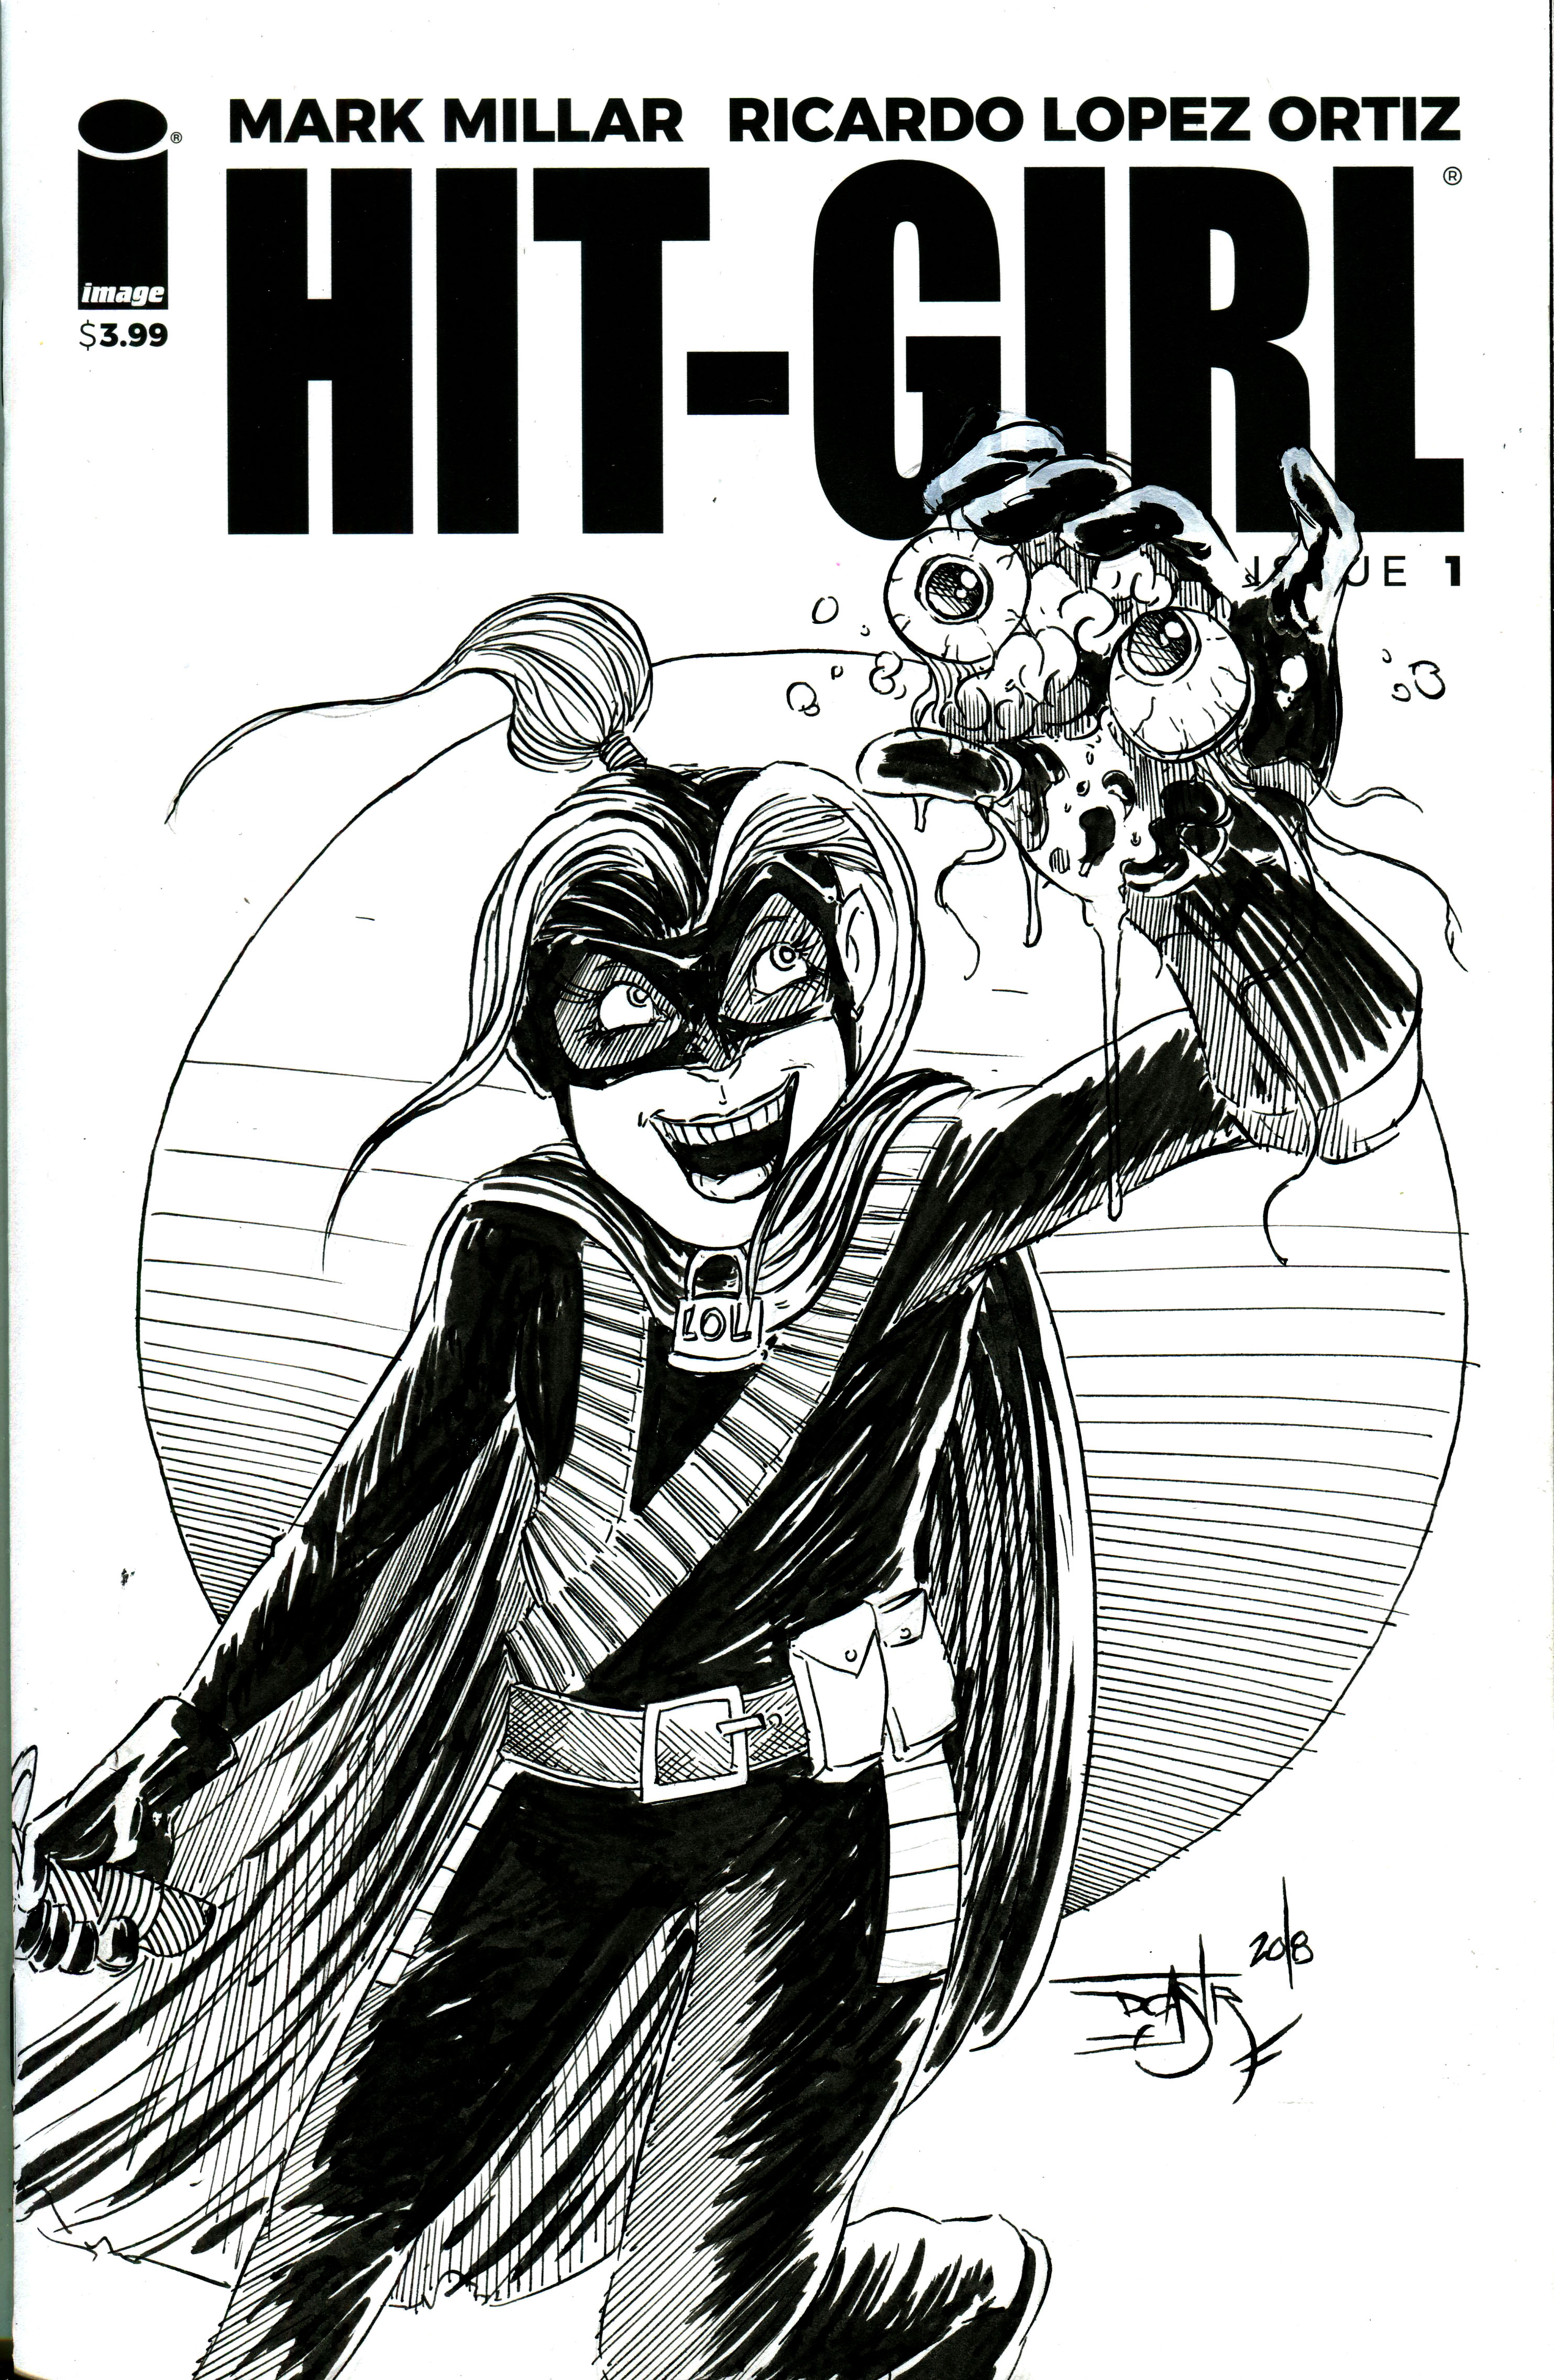 covers186